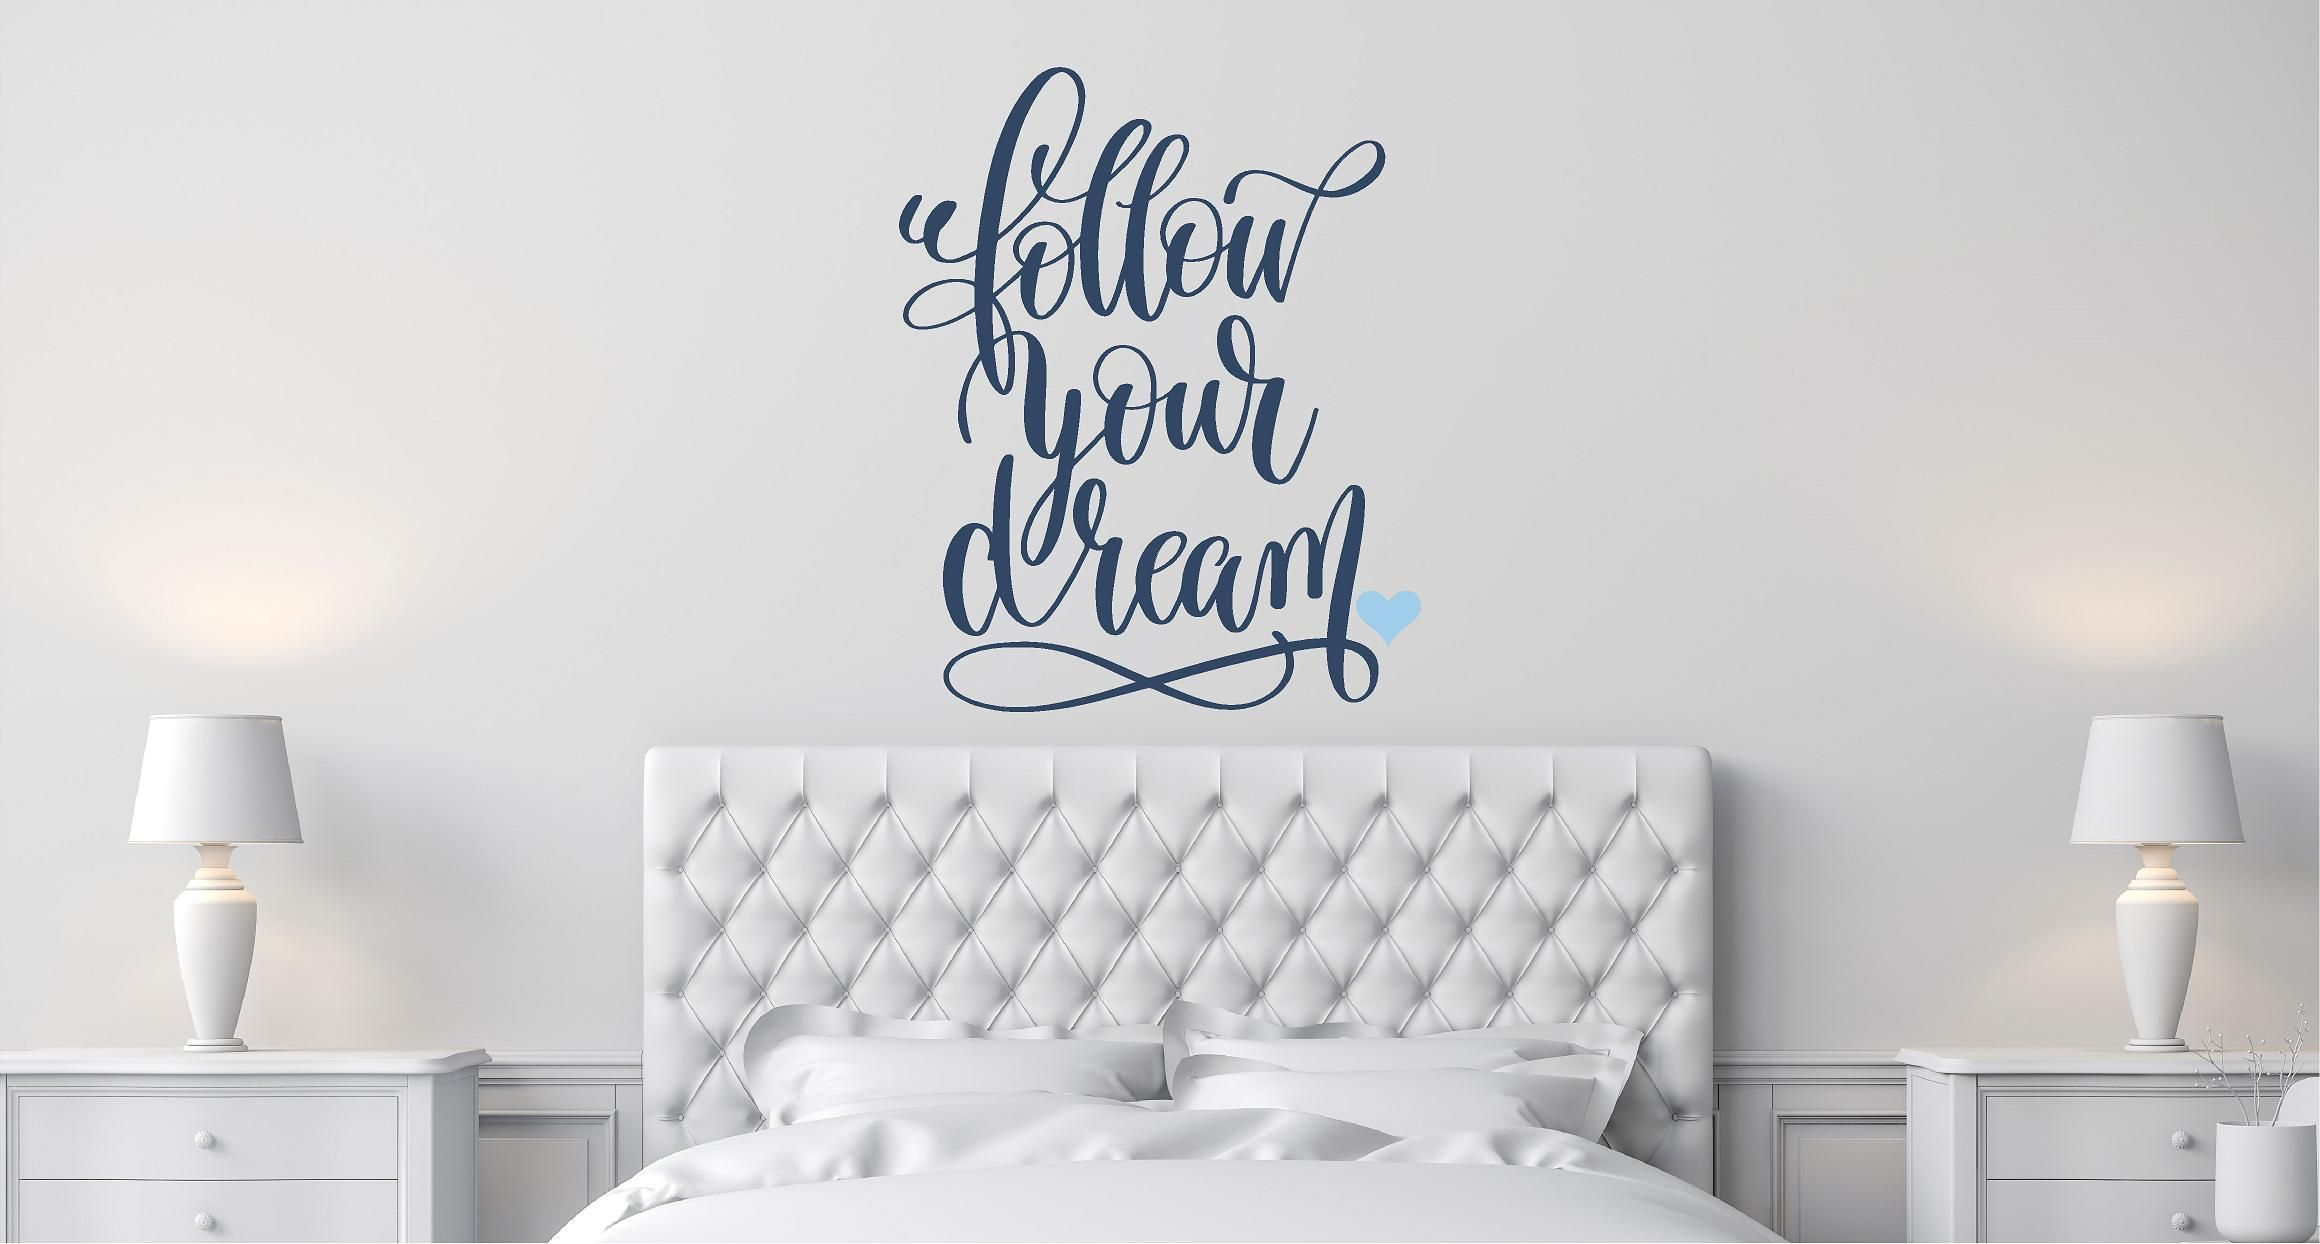 Follow your dream wall decal quote Home decor wall decor wall art